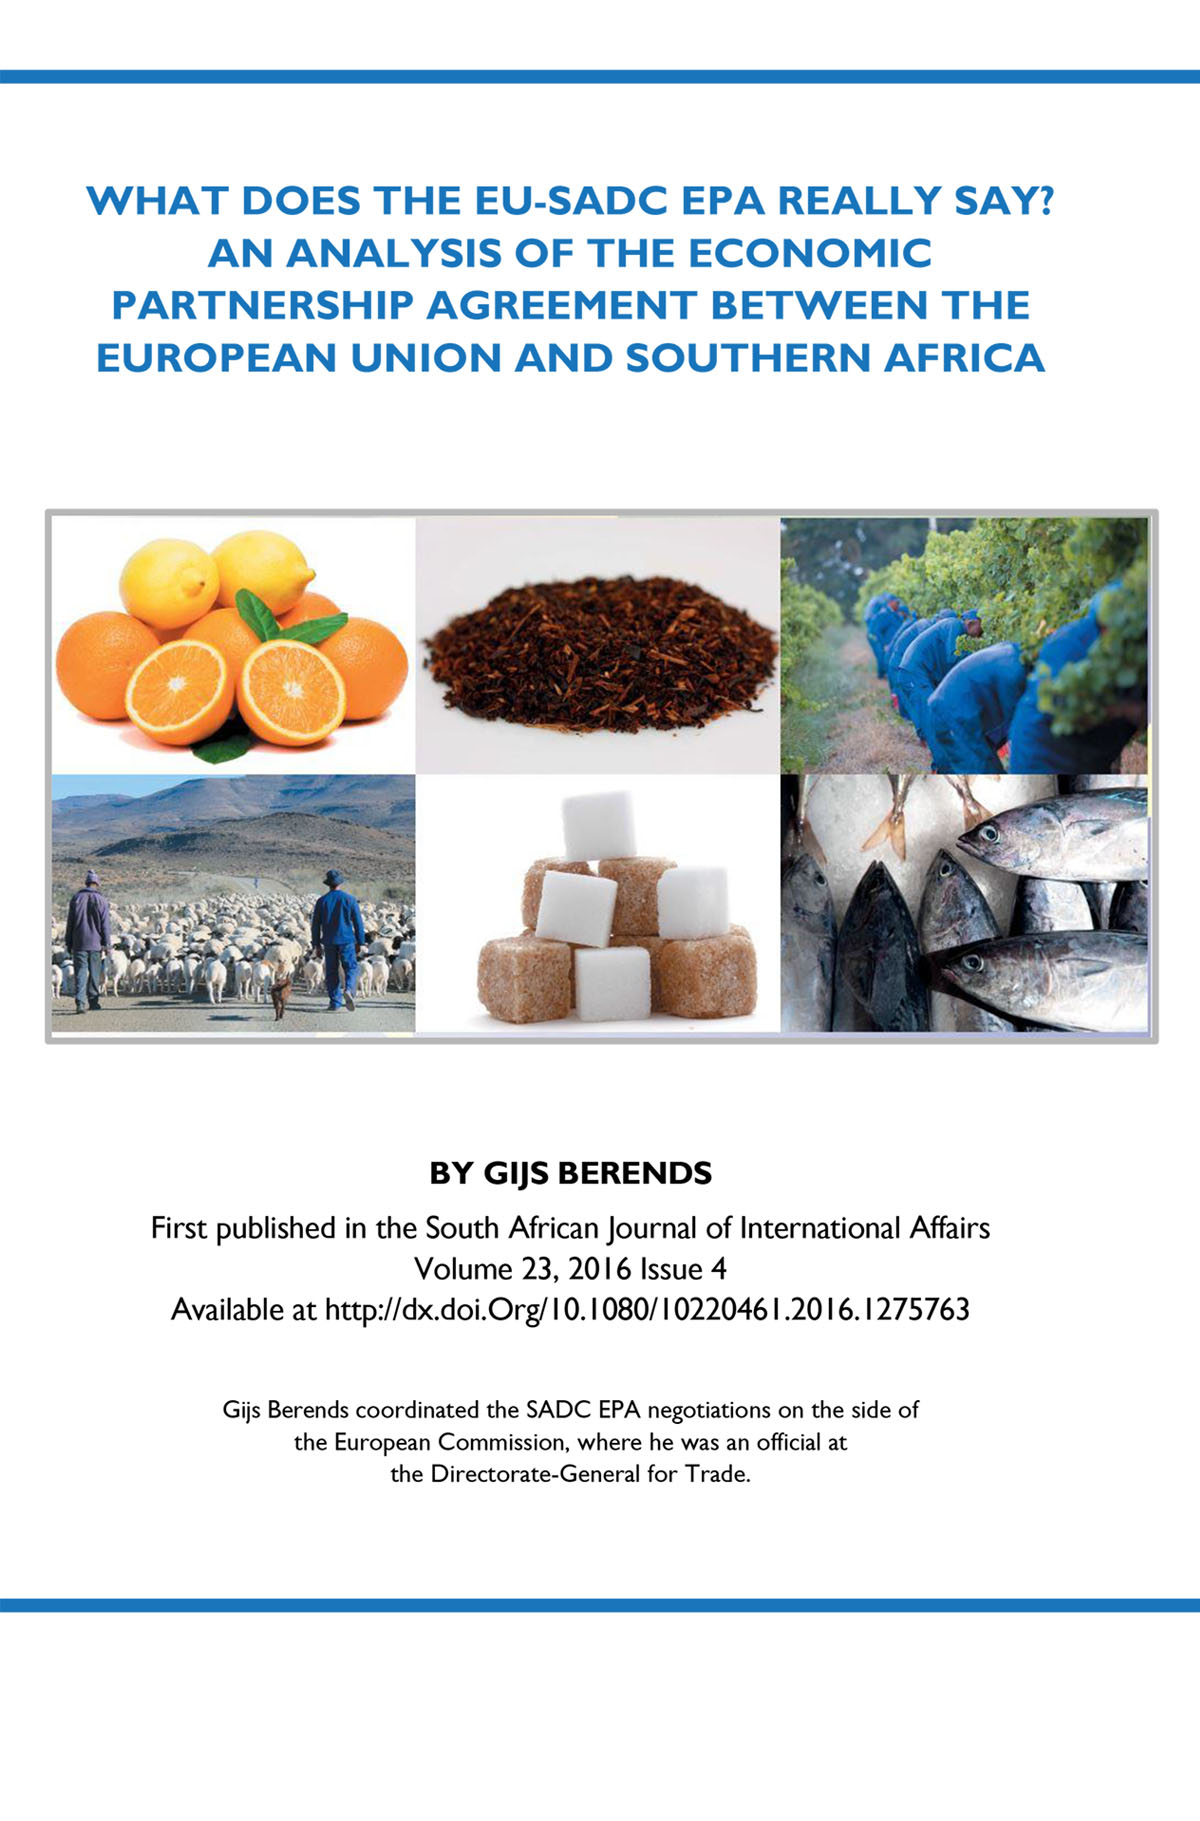 What does the EU-SADC EPA really say?